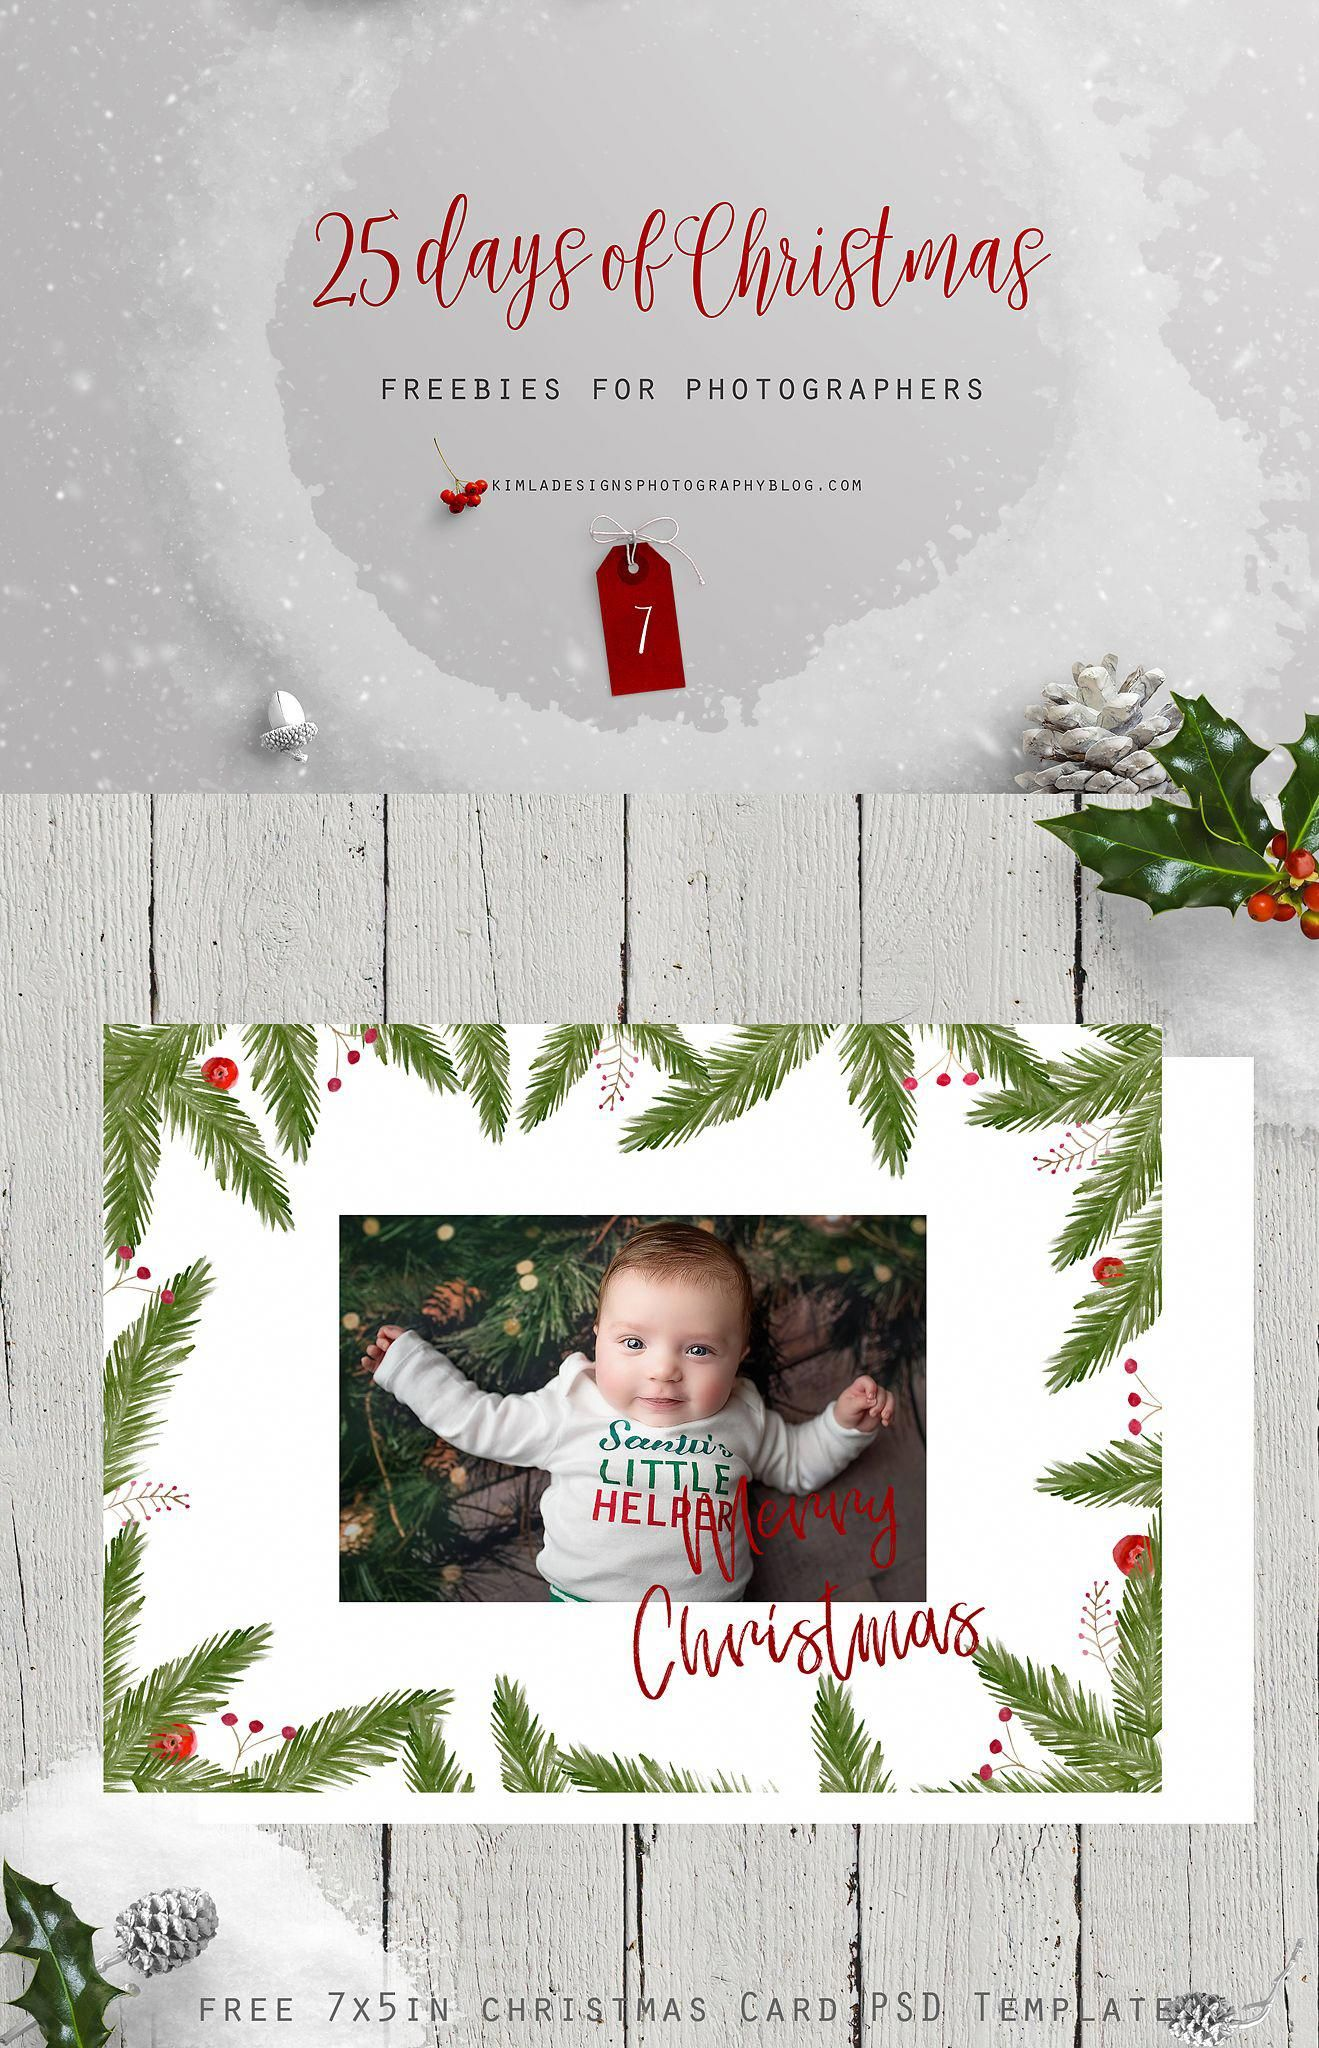 Free Watercolor Christmas Card Template For Photographers On The Blog Photoshoptutorialc Christmas Freebie Watercolor Christmas Cards Christmas Card Template